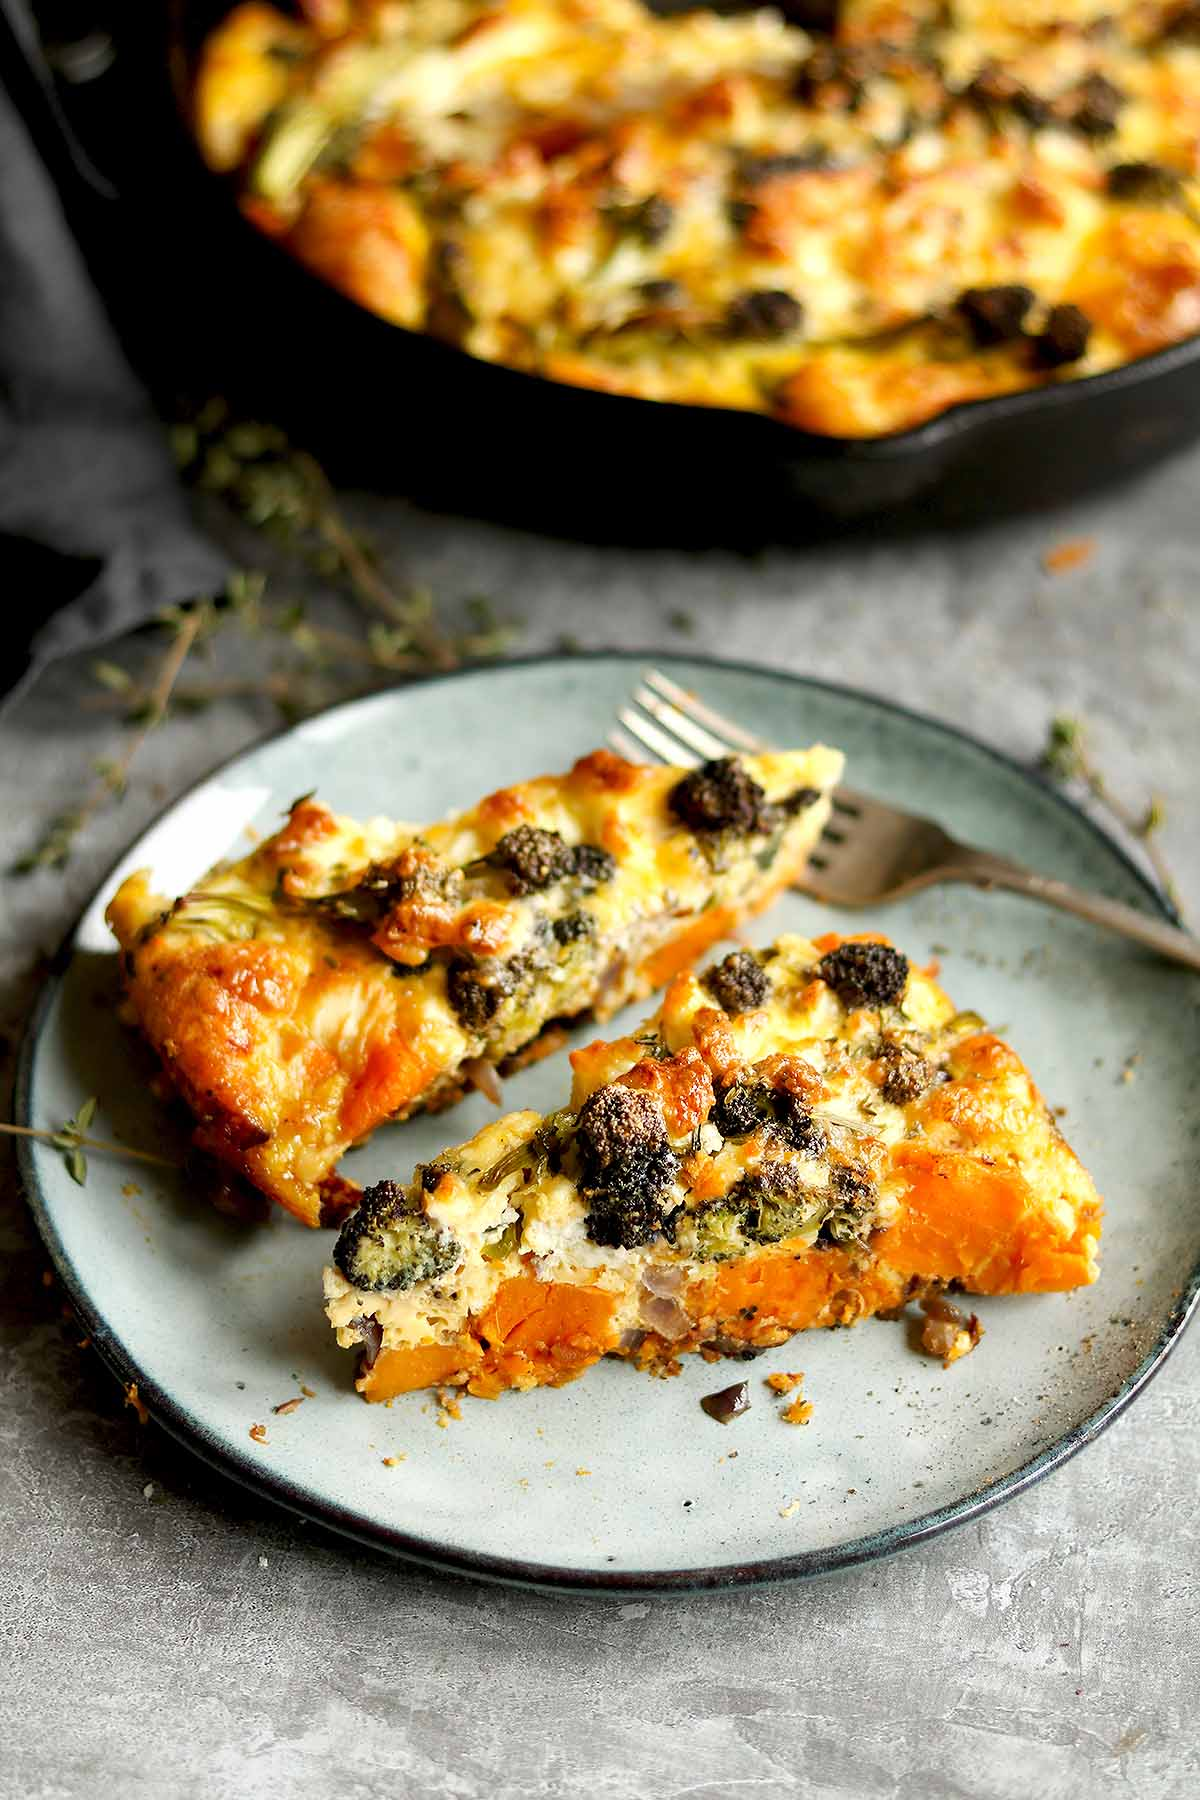 Broccoli and sweet Potato with caramelized red onions and feta made as a Frittata